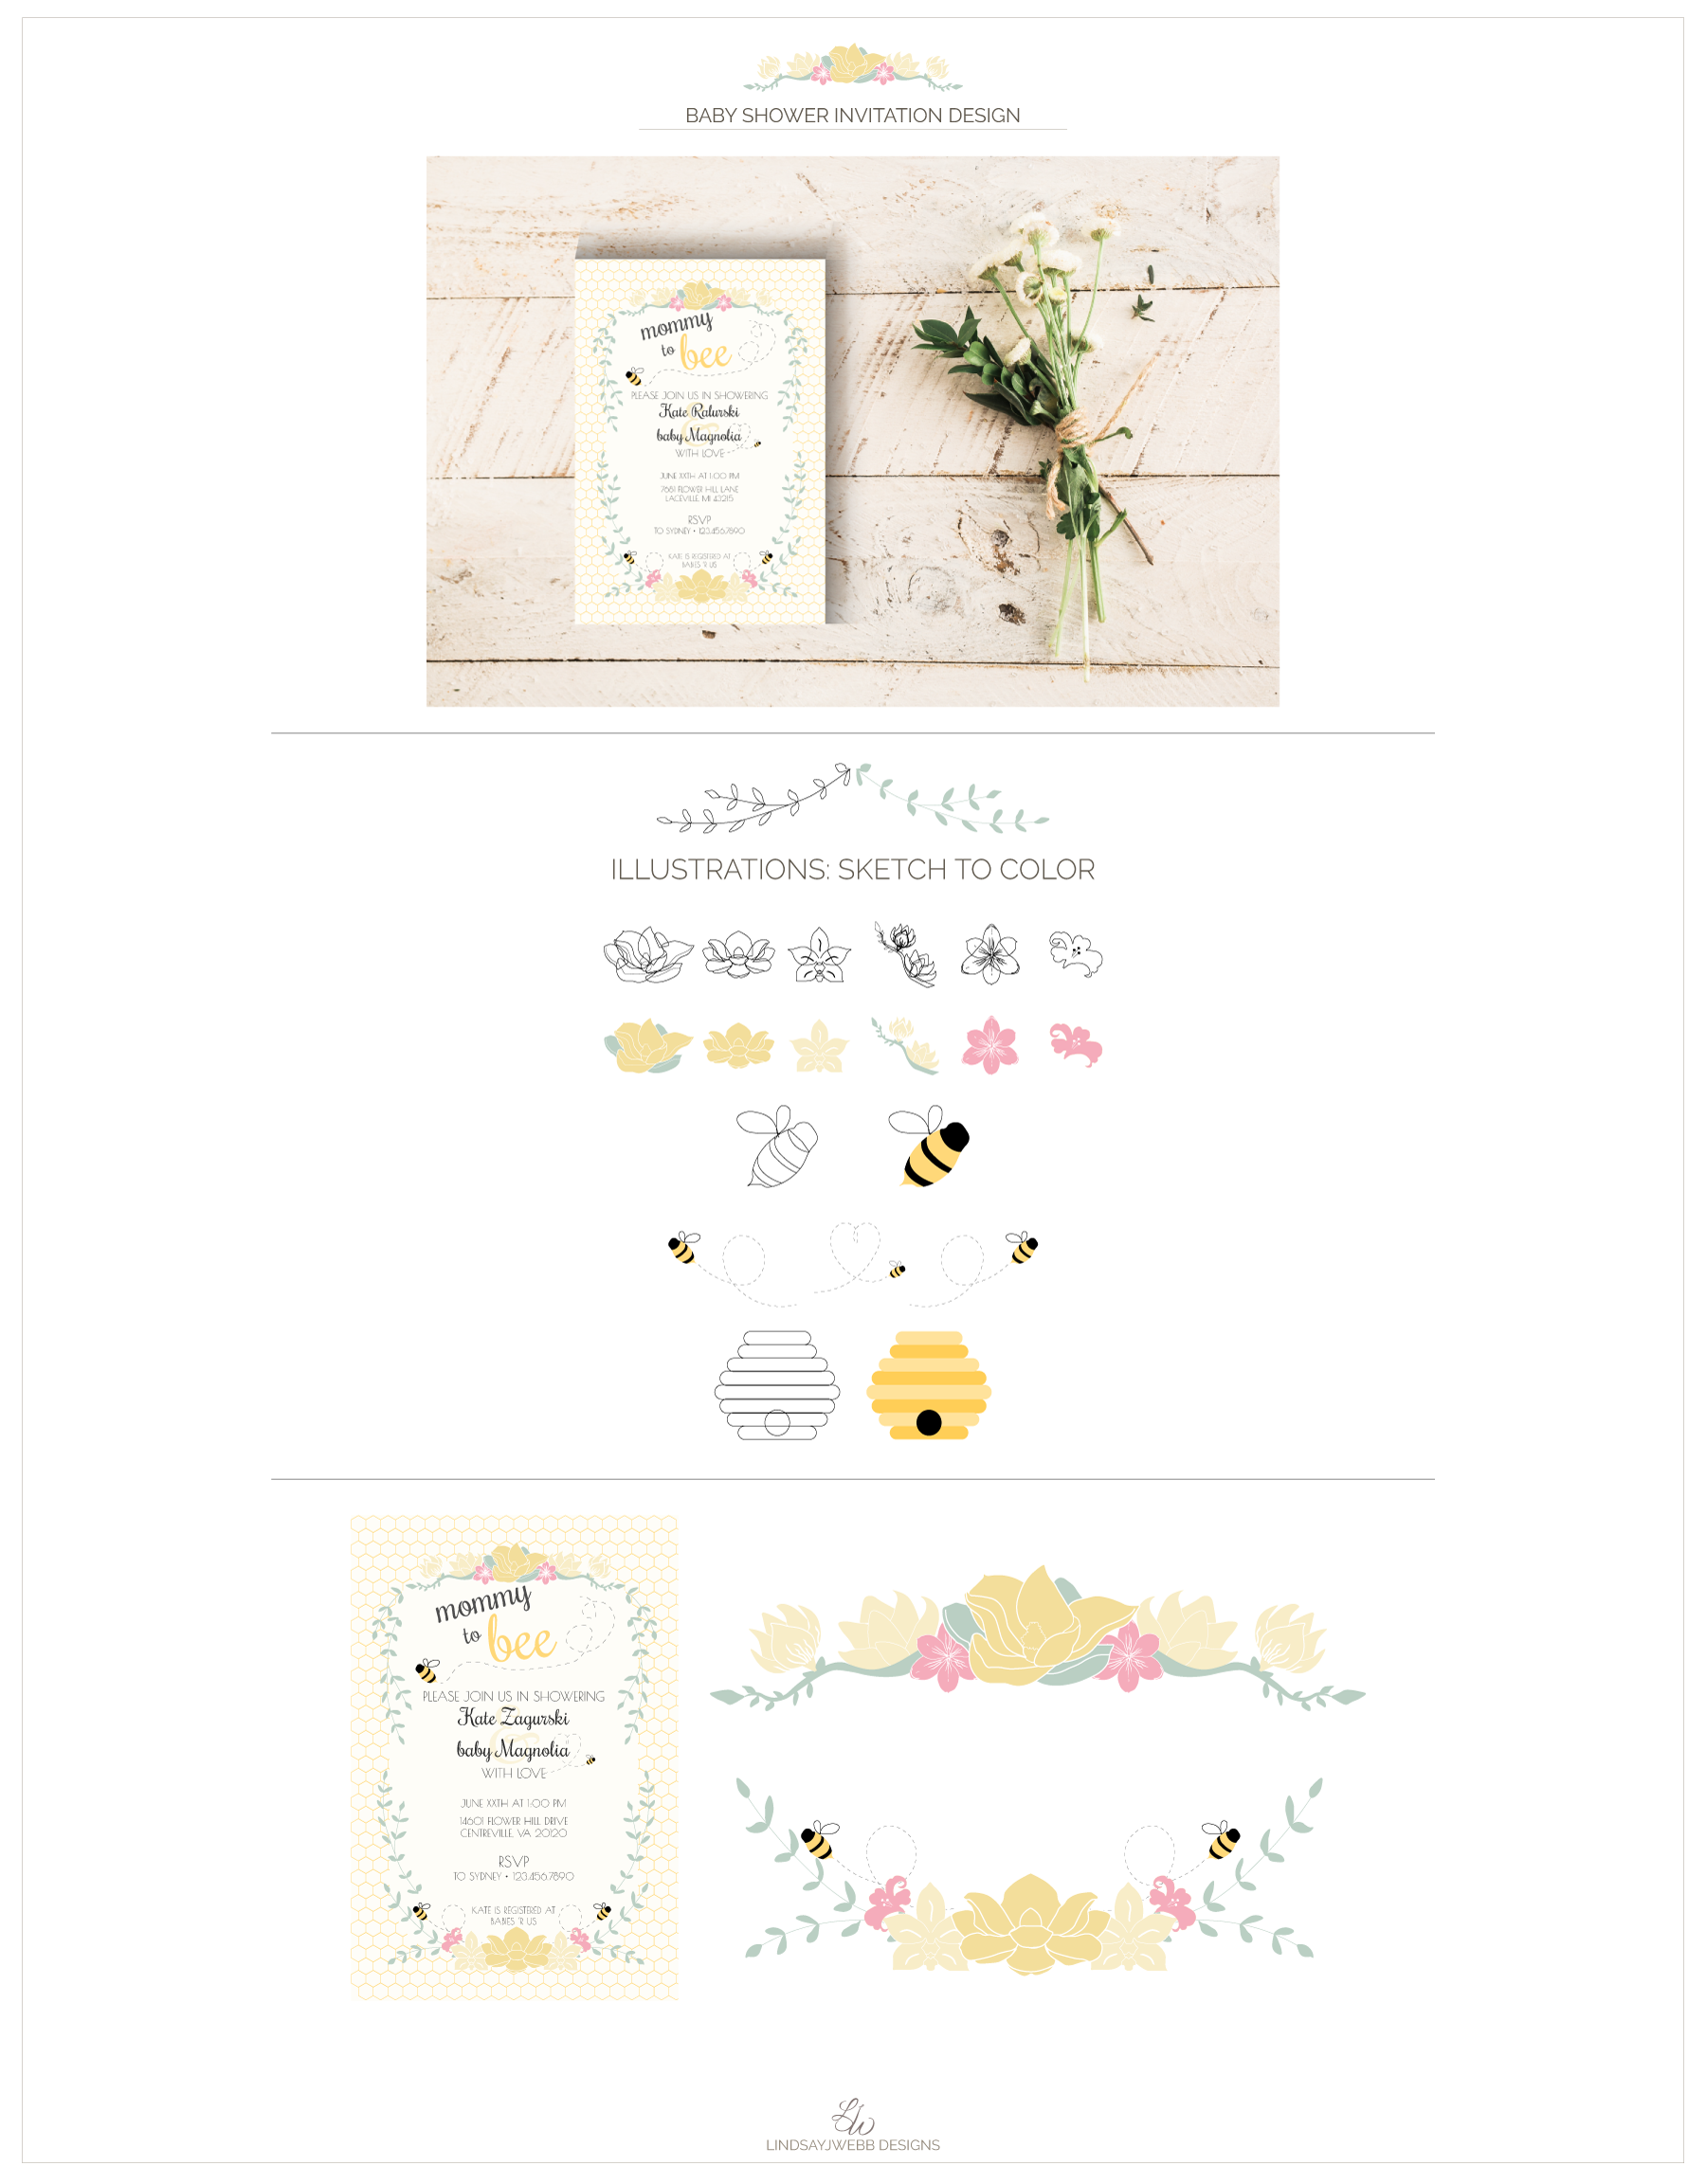 Personalized Invitation Designed For A Bee Themed Baby Shower Key Design Elements Include Ilrations Of Flowers And Ble Bees